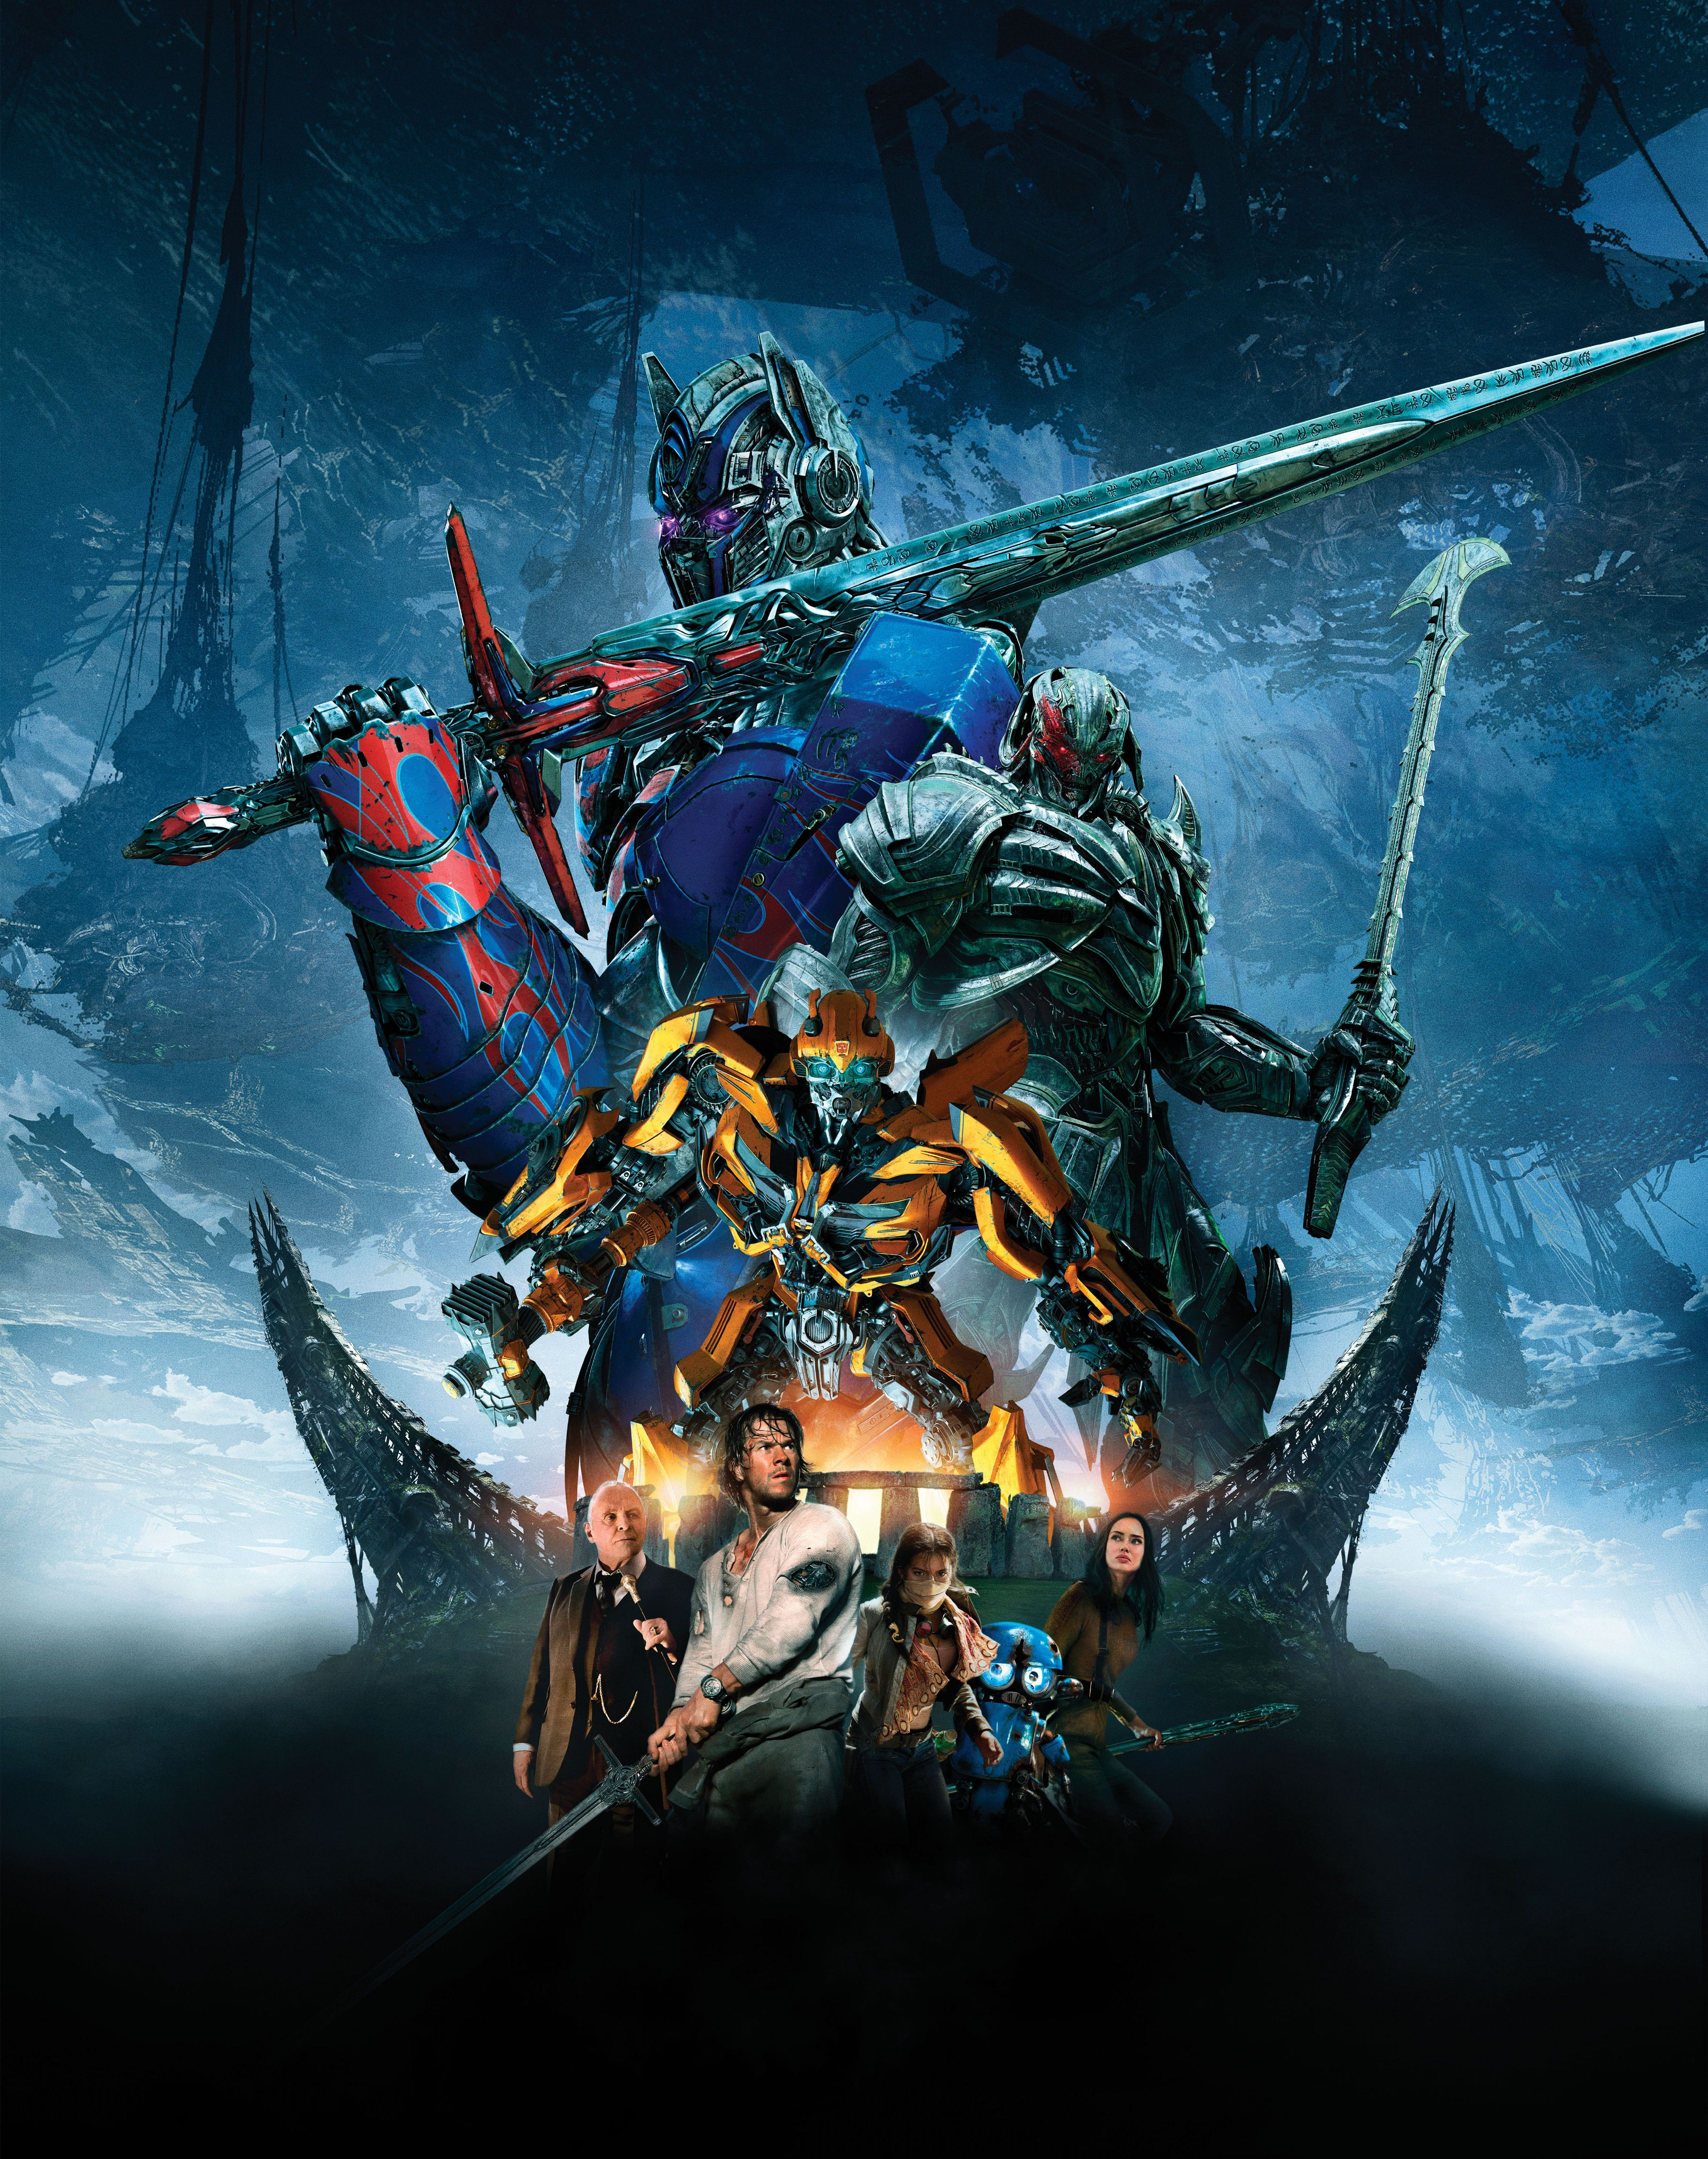 transformers the last knight new poster transformers others pinterest transformers. Black Bedroom Furniture Sets. Home Design Ideas